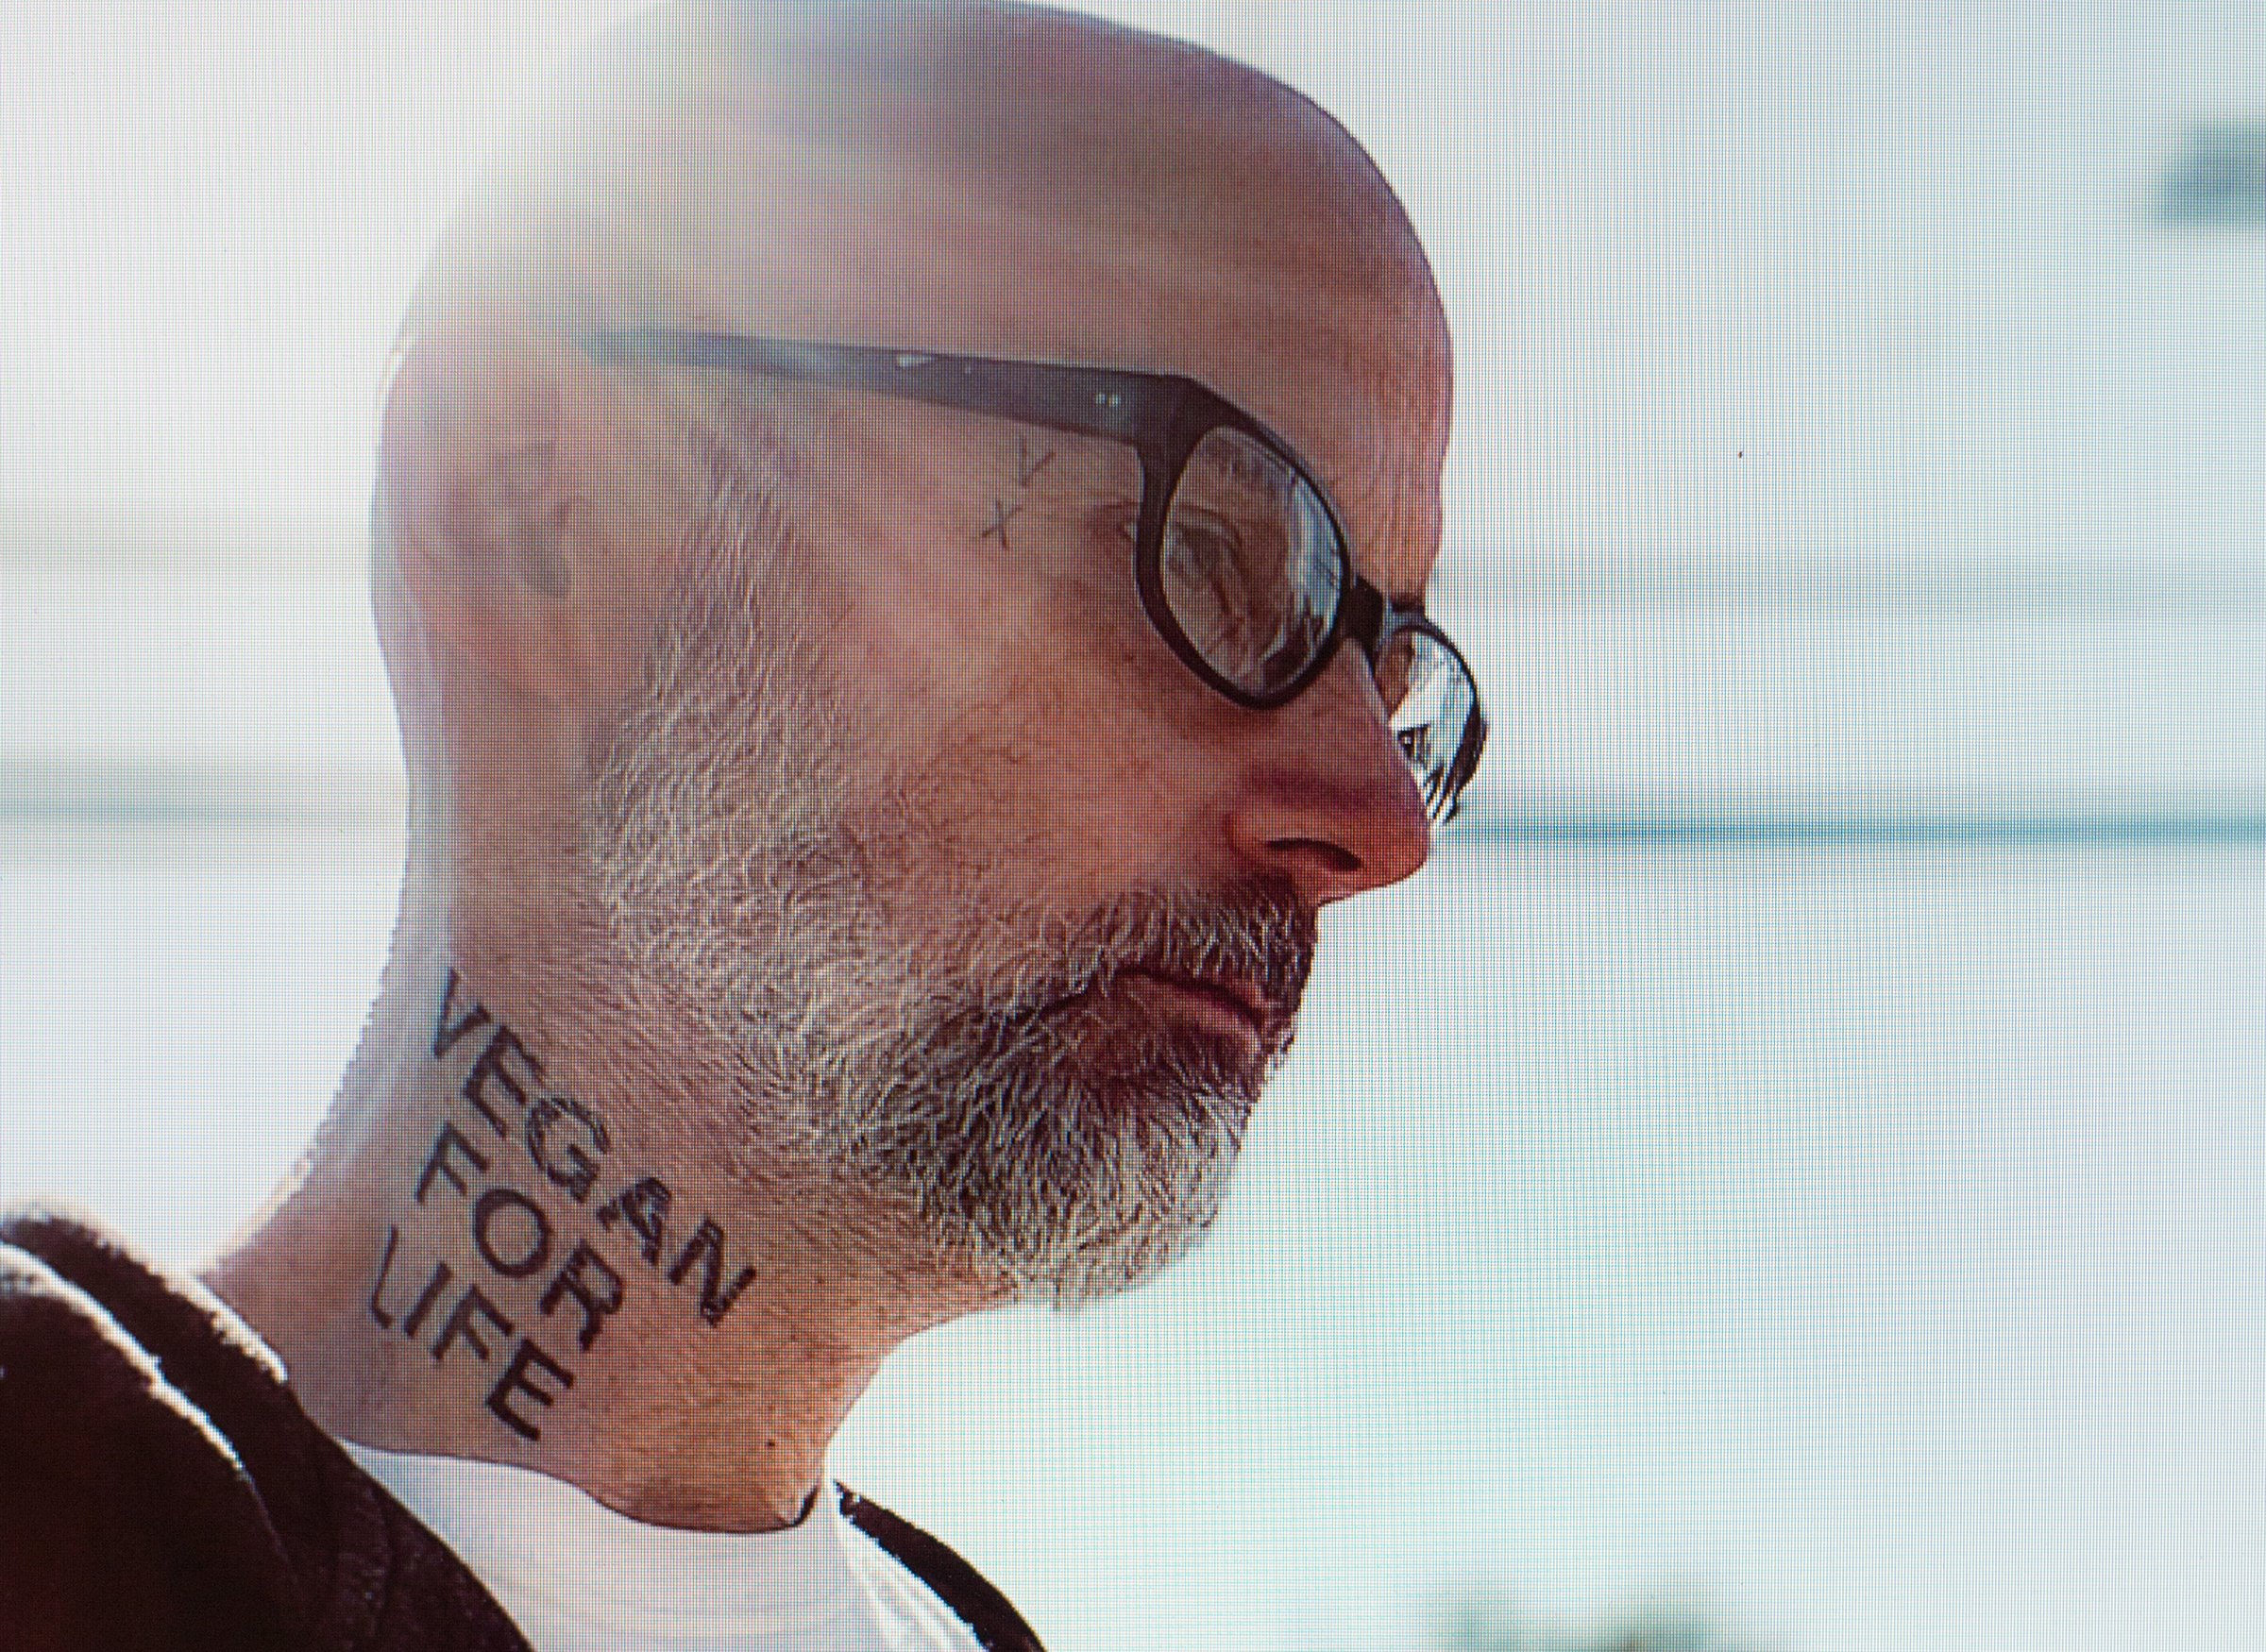 MOBY Announces the March 6 release of his new album, All Visible Objects